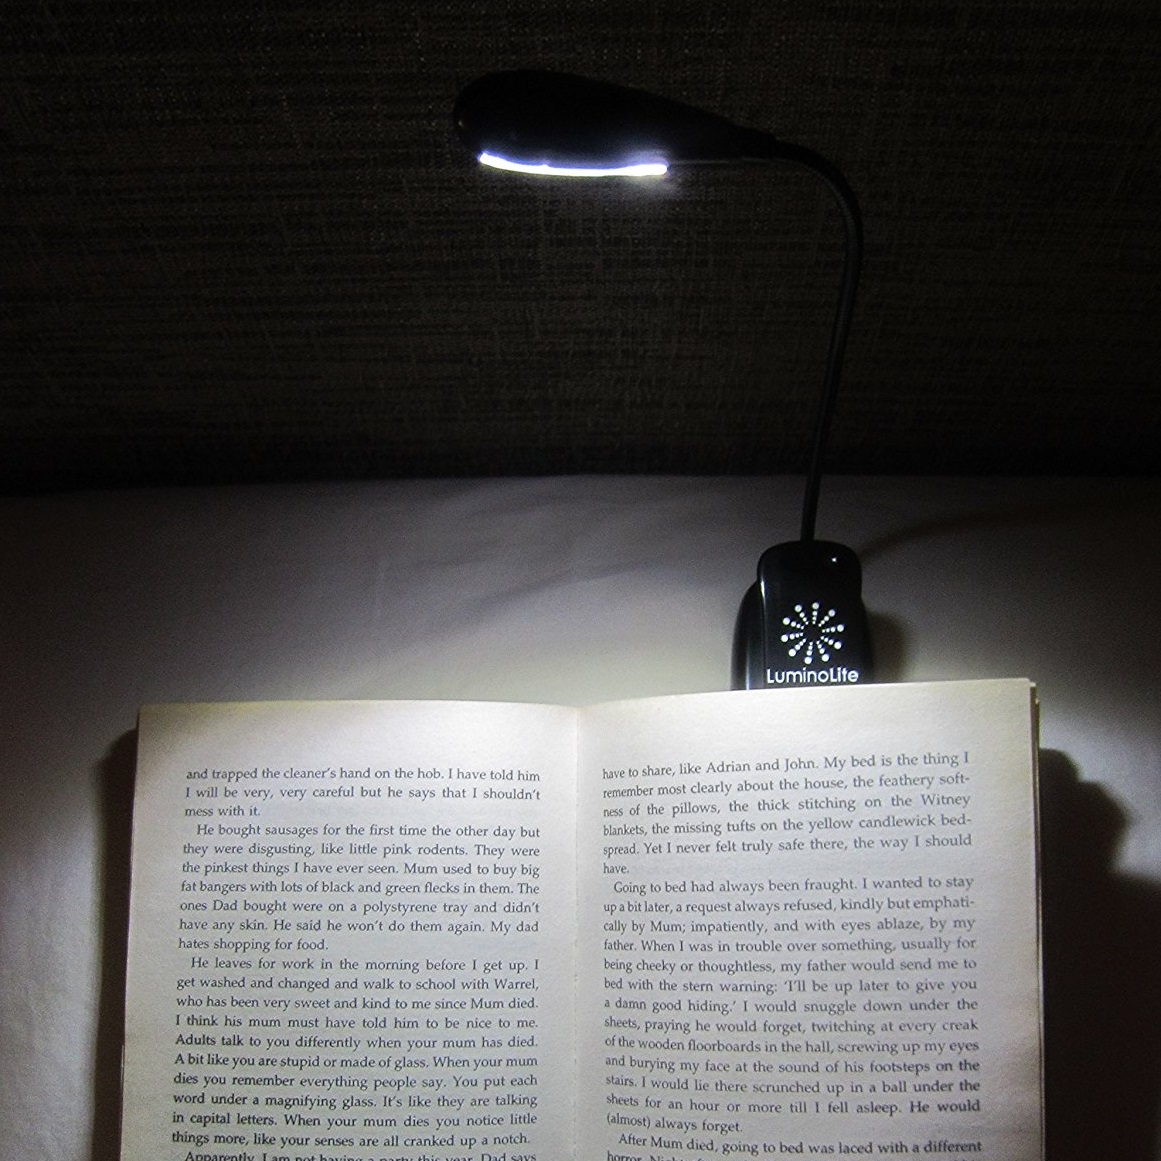 LuminoLite Rechargeable Reading Light